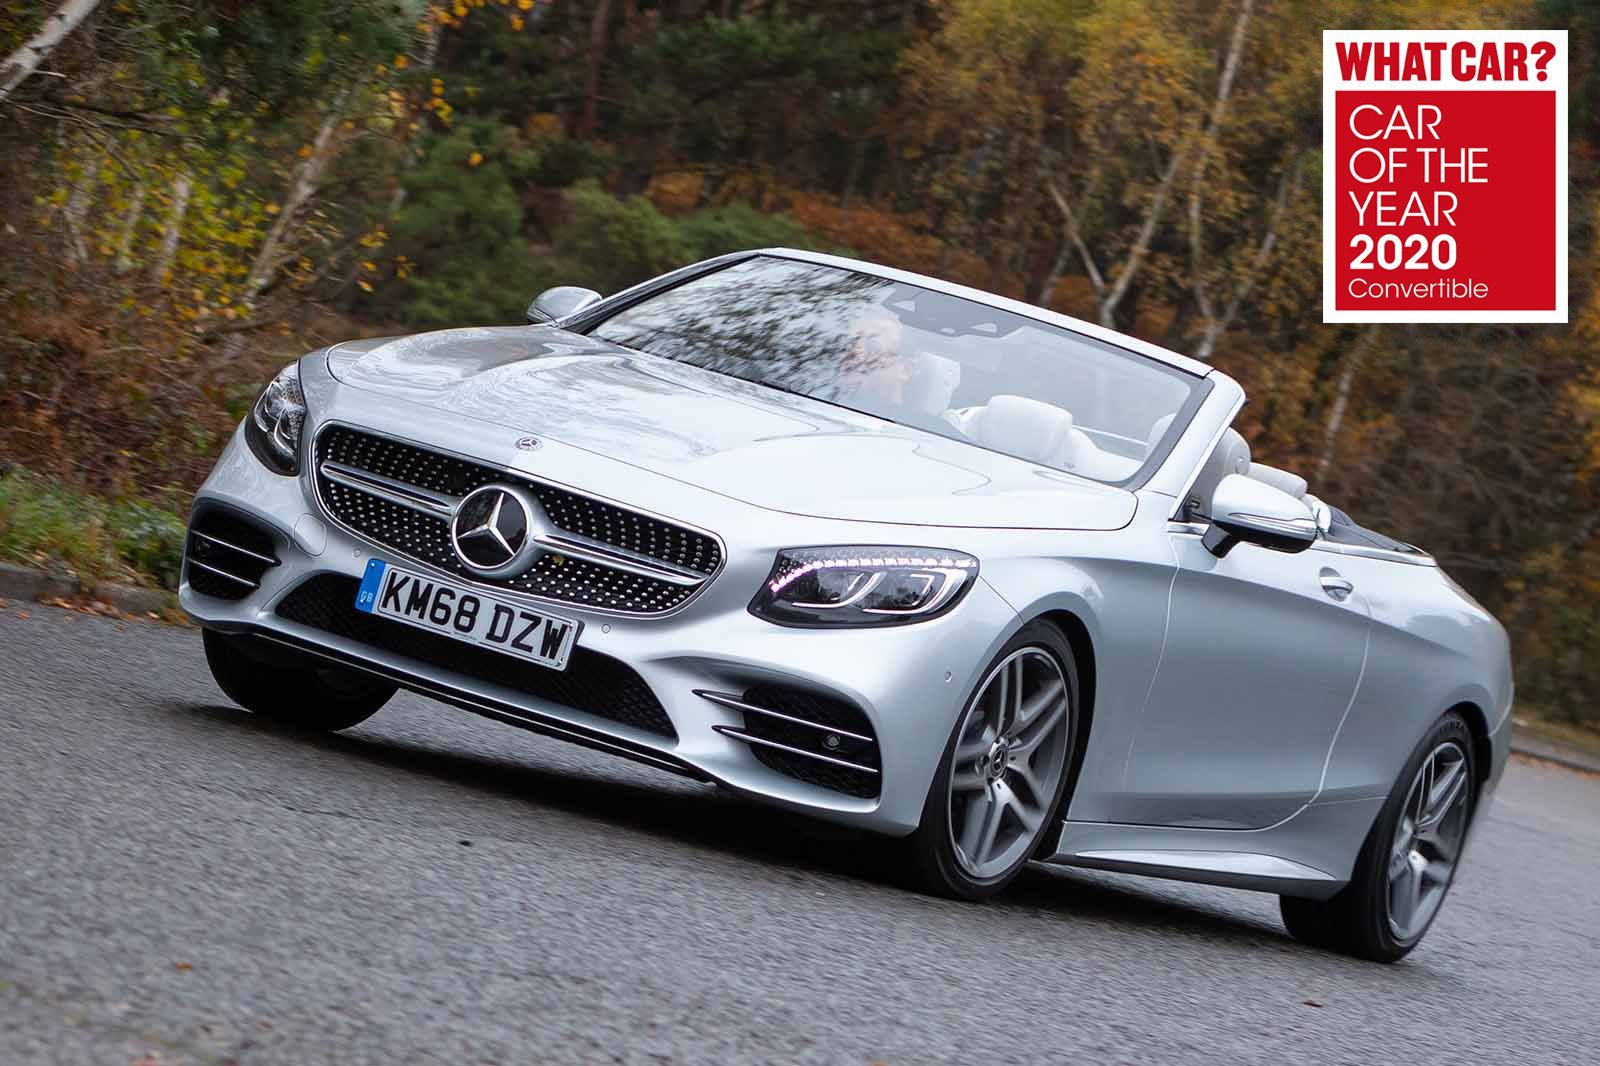 Mercedes-Benz S-Class Convertible with What Car? Awards logo